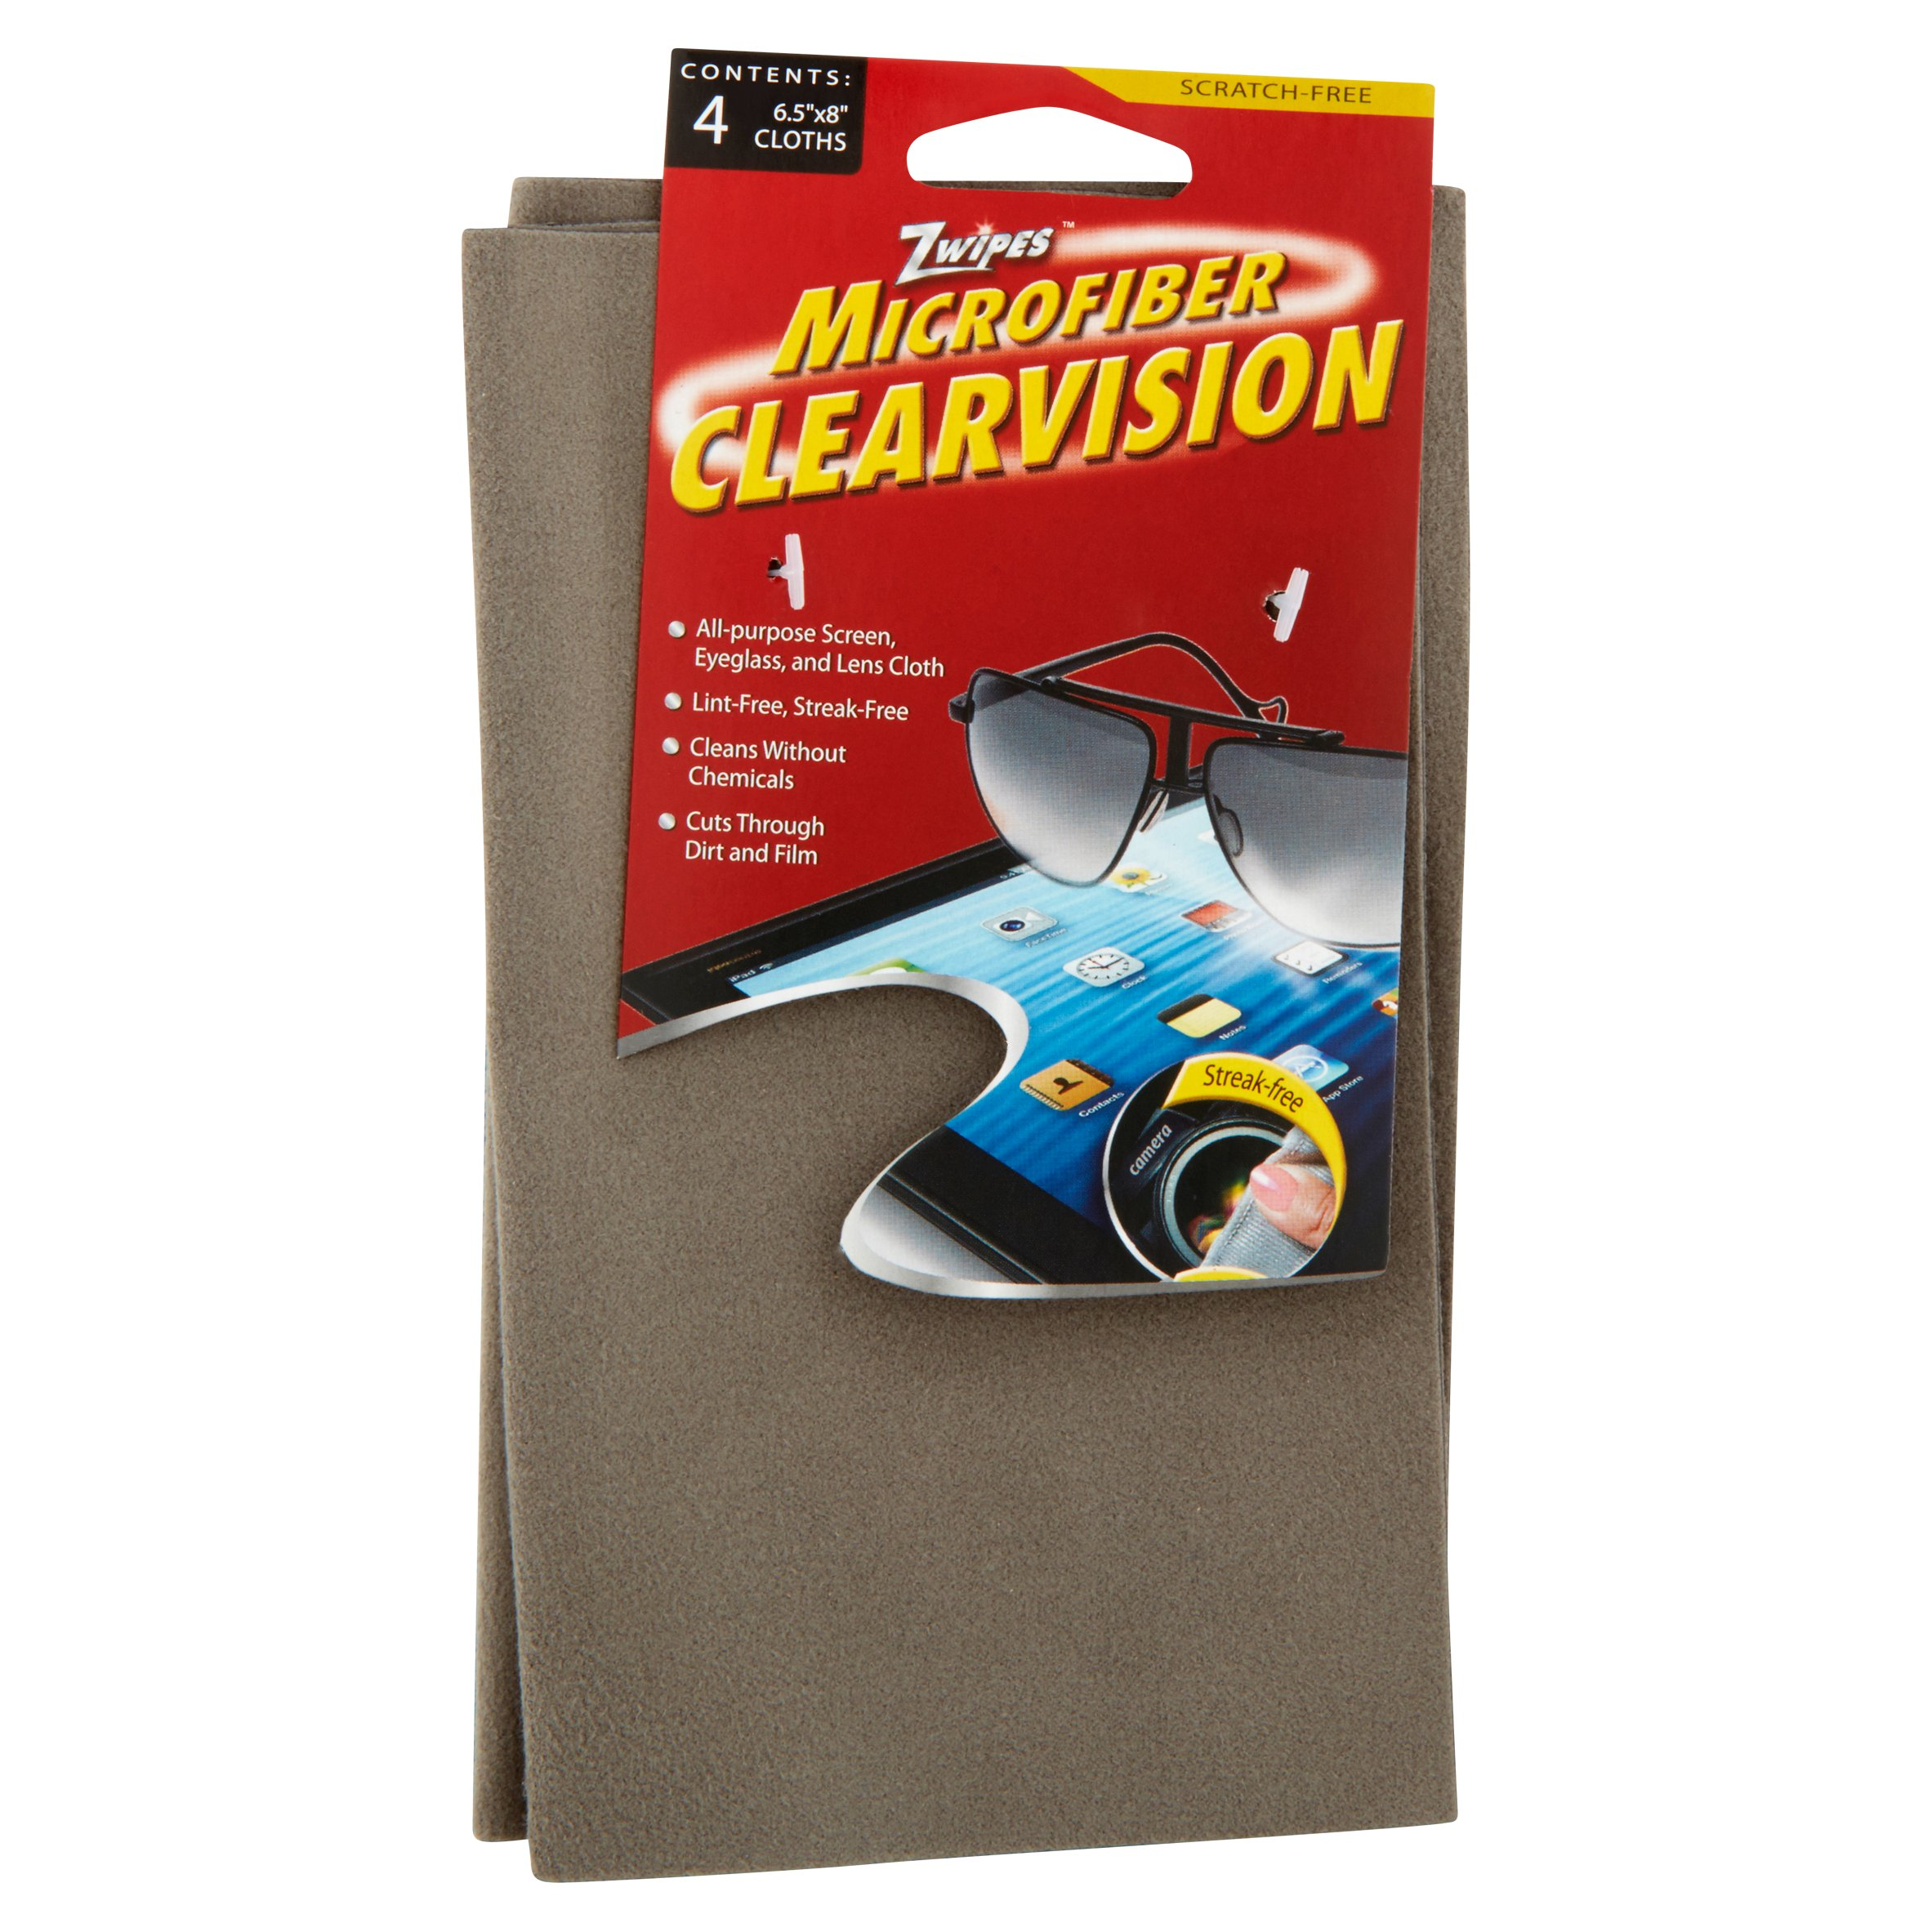 Zwipes Microfiber Clearvision All-Purpose Screen, Eyeglass and Lens Cloth, 4 count